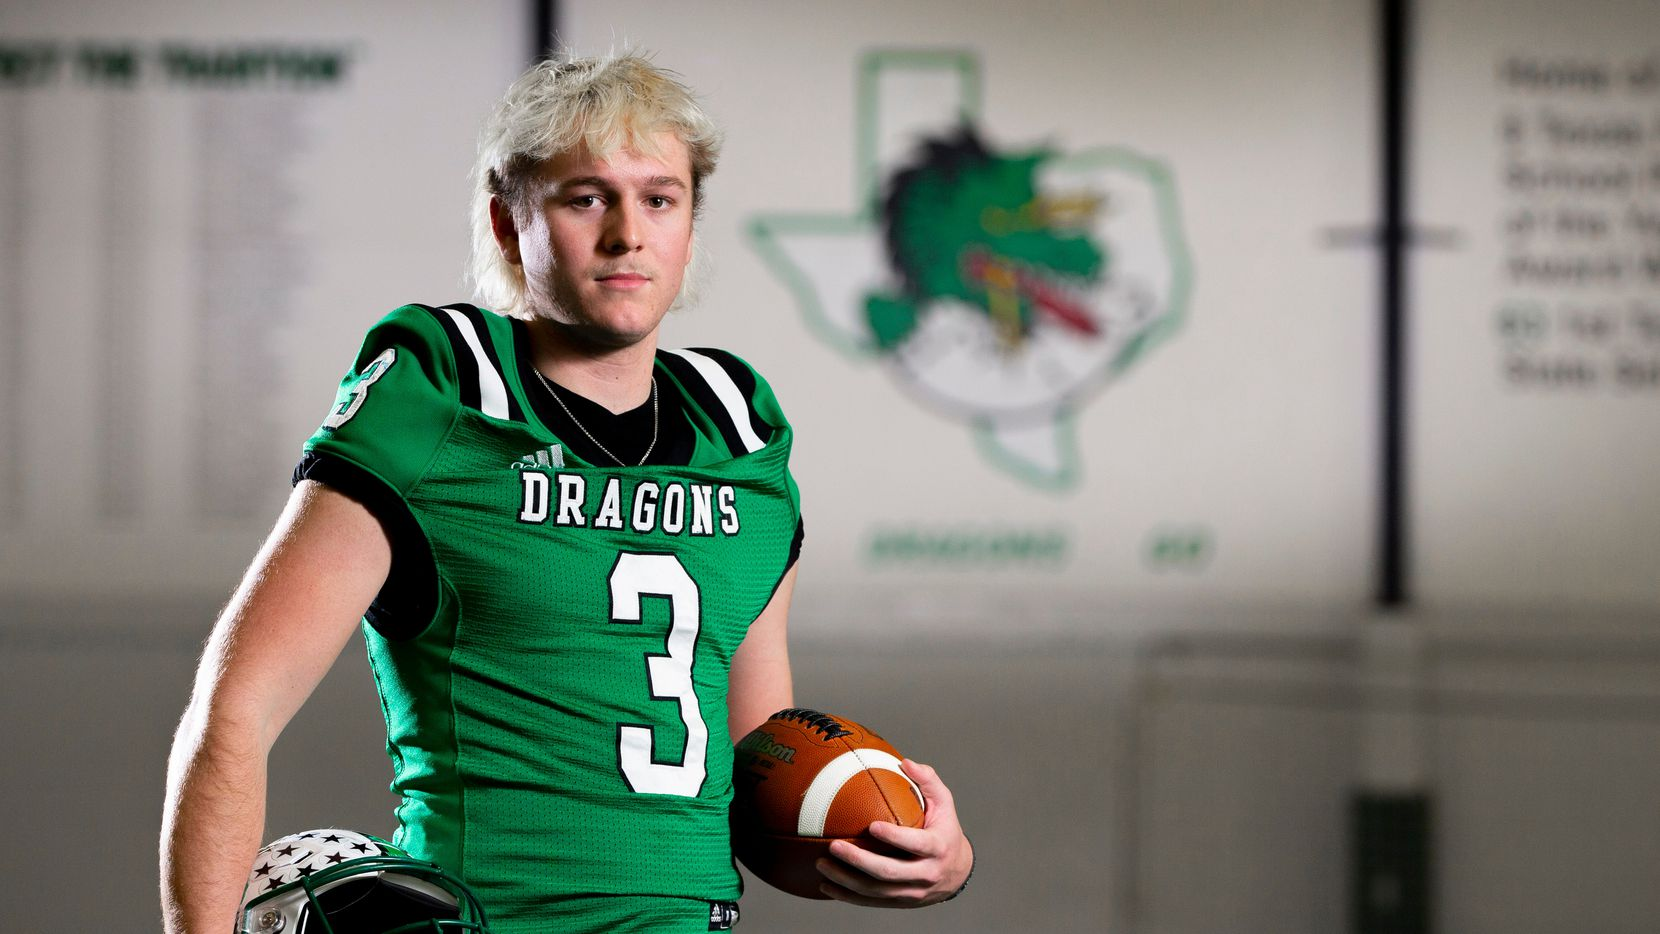 Southlake junior quarterback Quinn Ewers poses for a photo at Southlake High School, Tuesday, February 2, 2021.  Ewers is the No. 1 recruit in the country for the 2022 class and has committed to The Ohio State.